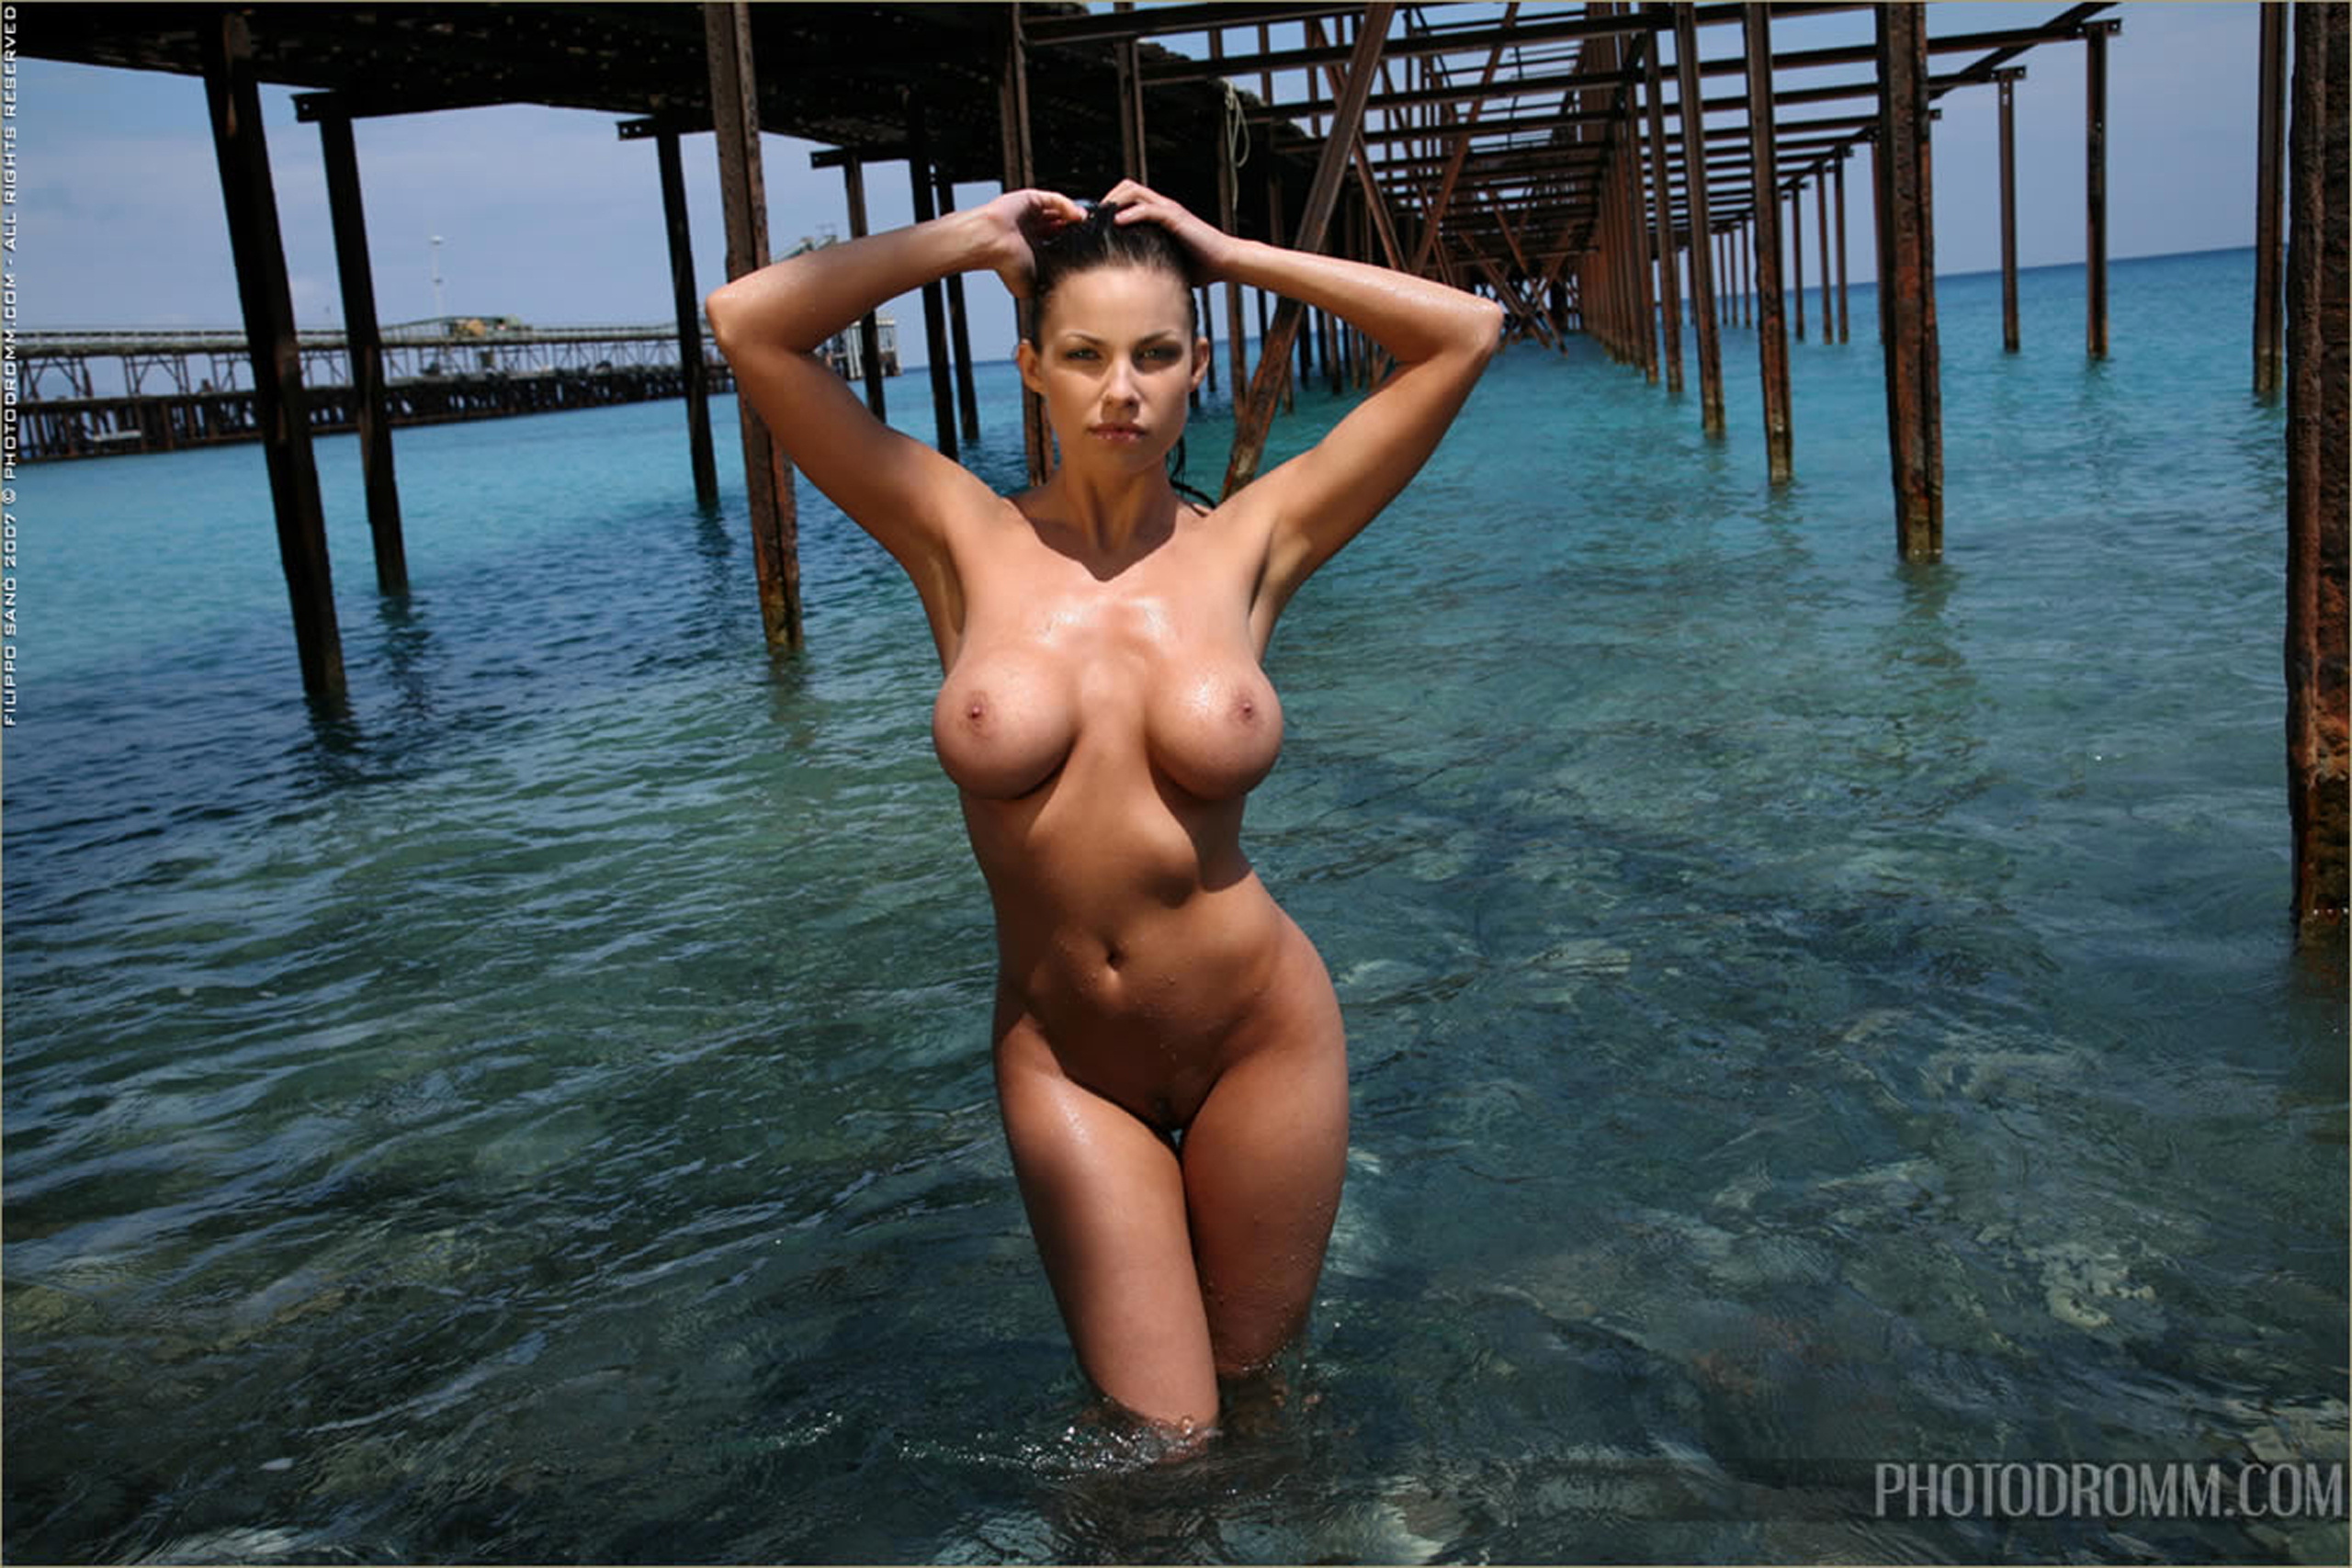 sea beach bigboobs nude woman in